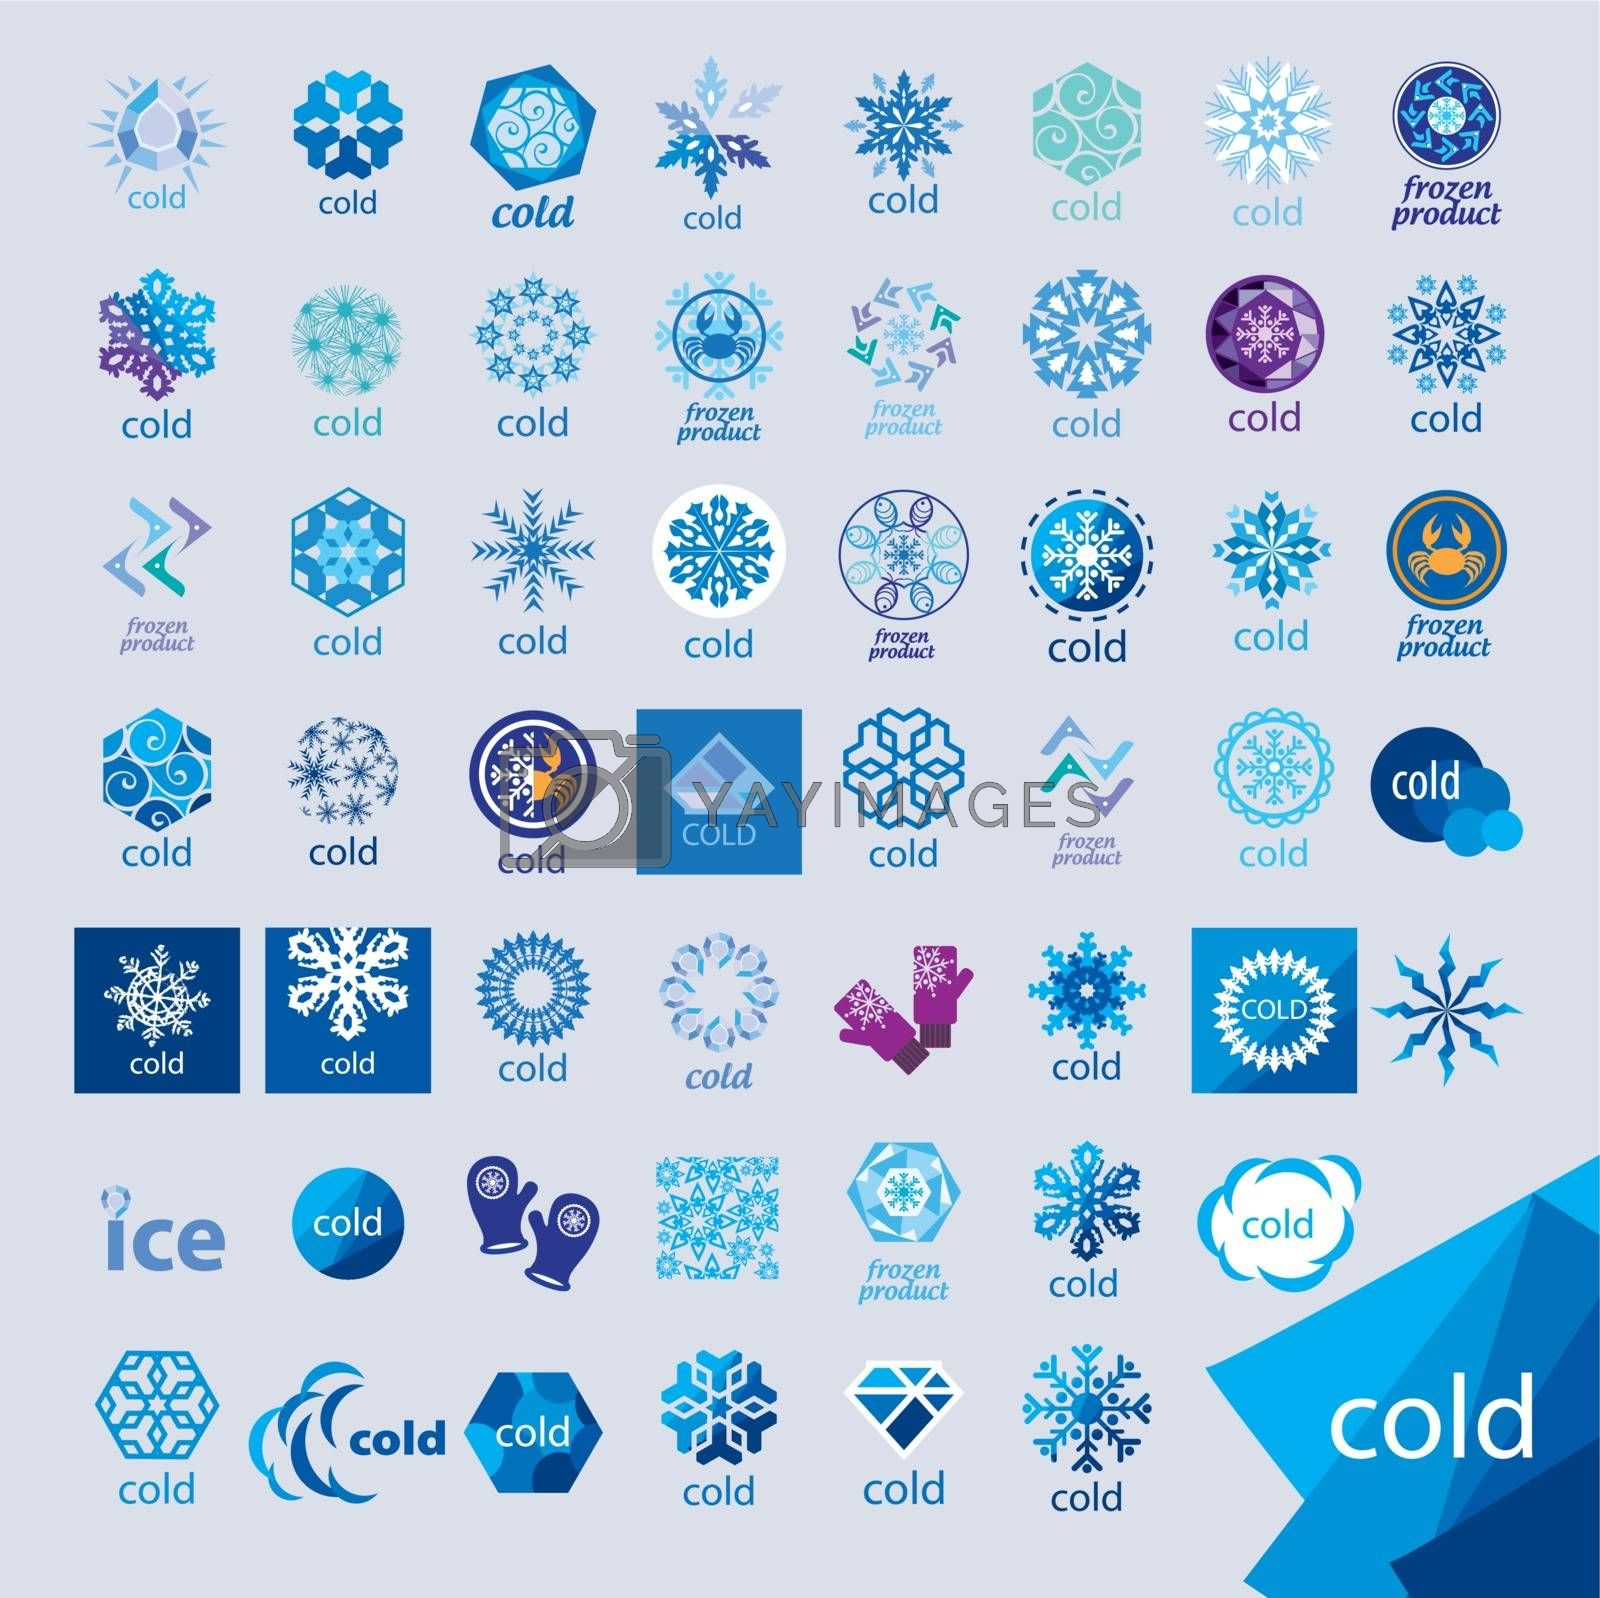 biggest collection of vector logos cold and frost by Butenkov